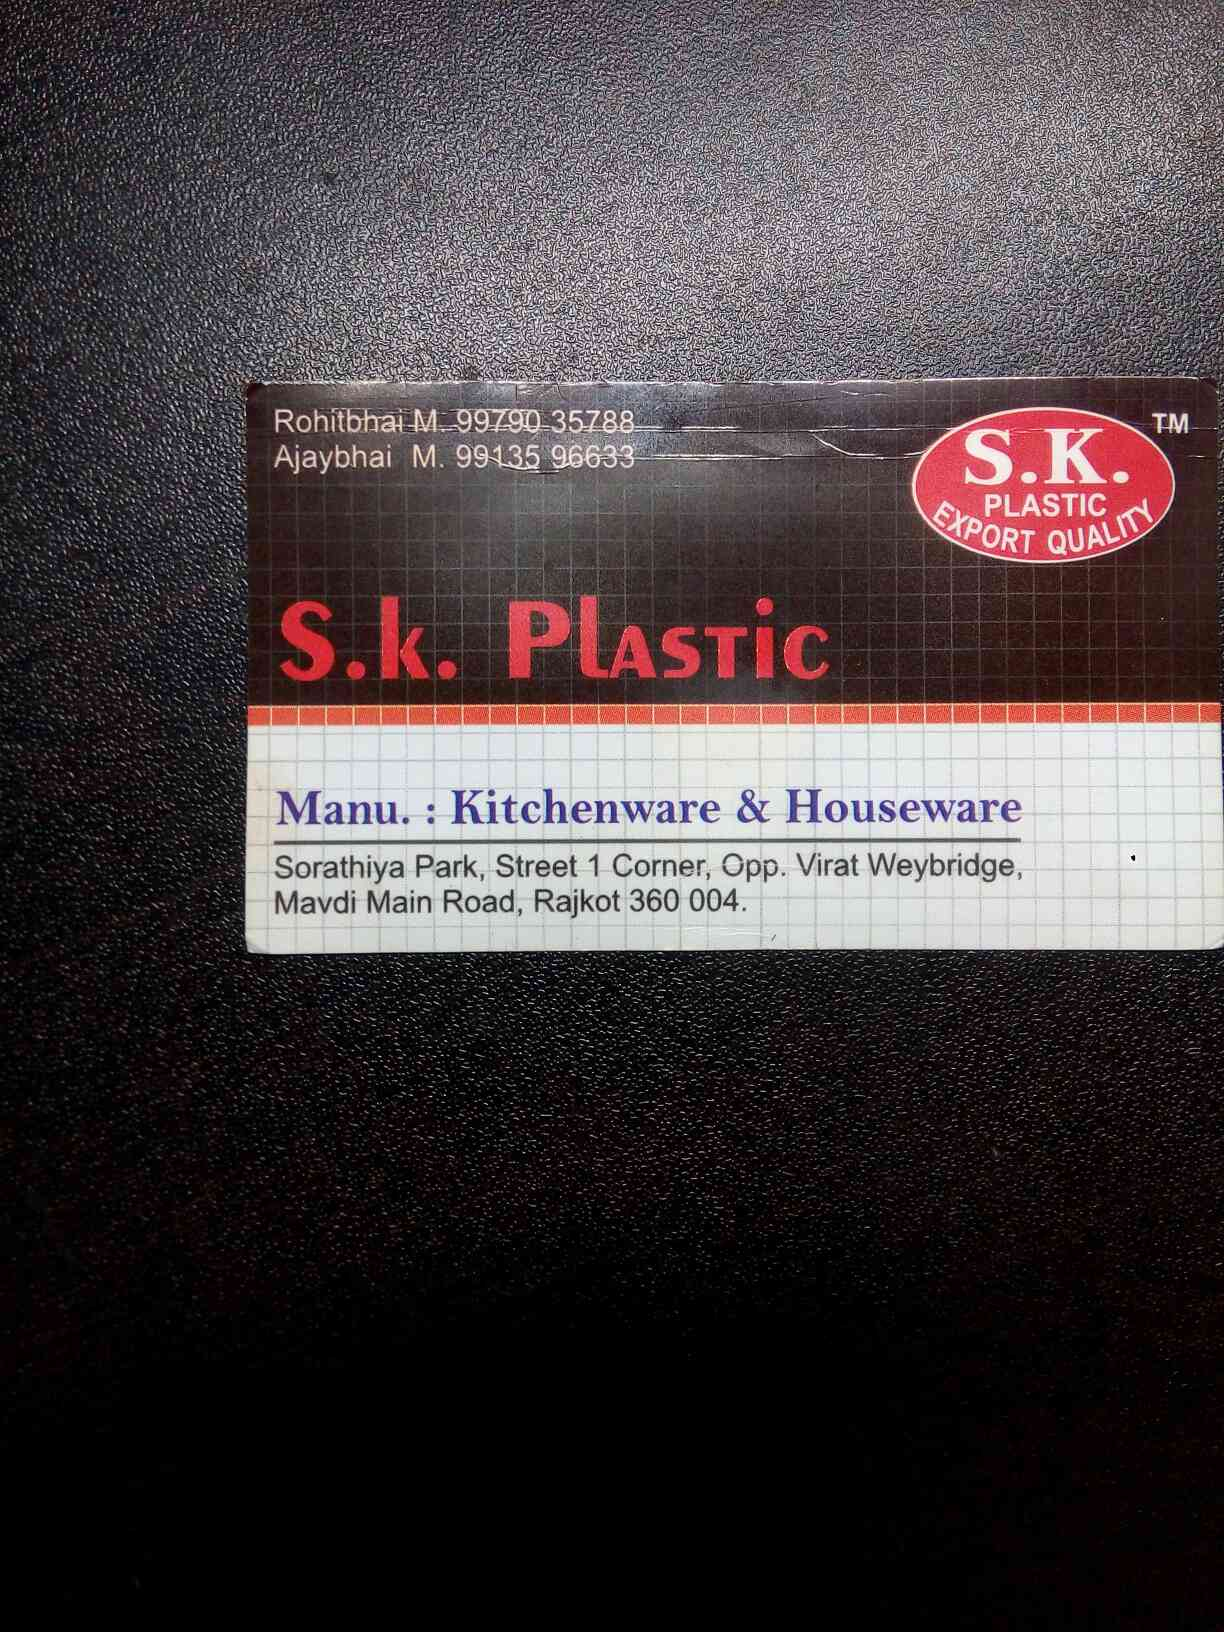 S K Plastic is best quality Manufacturer of pol pat in rajkot